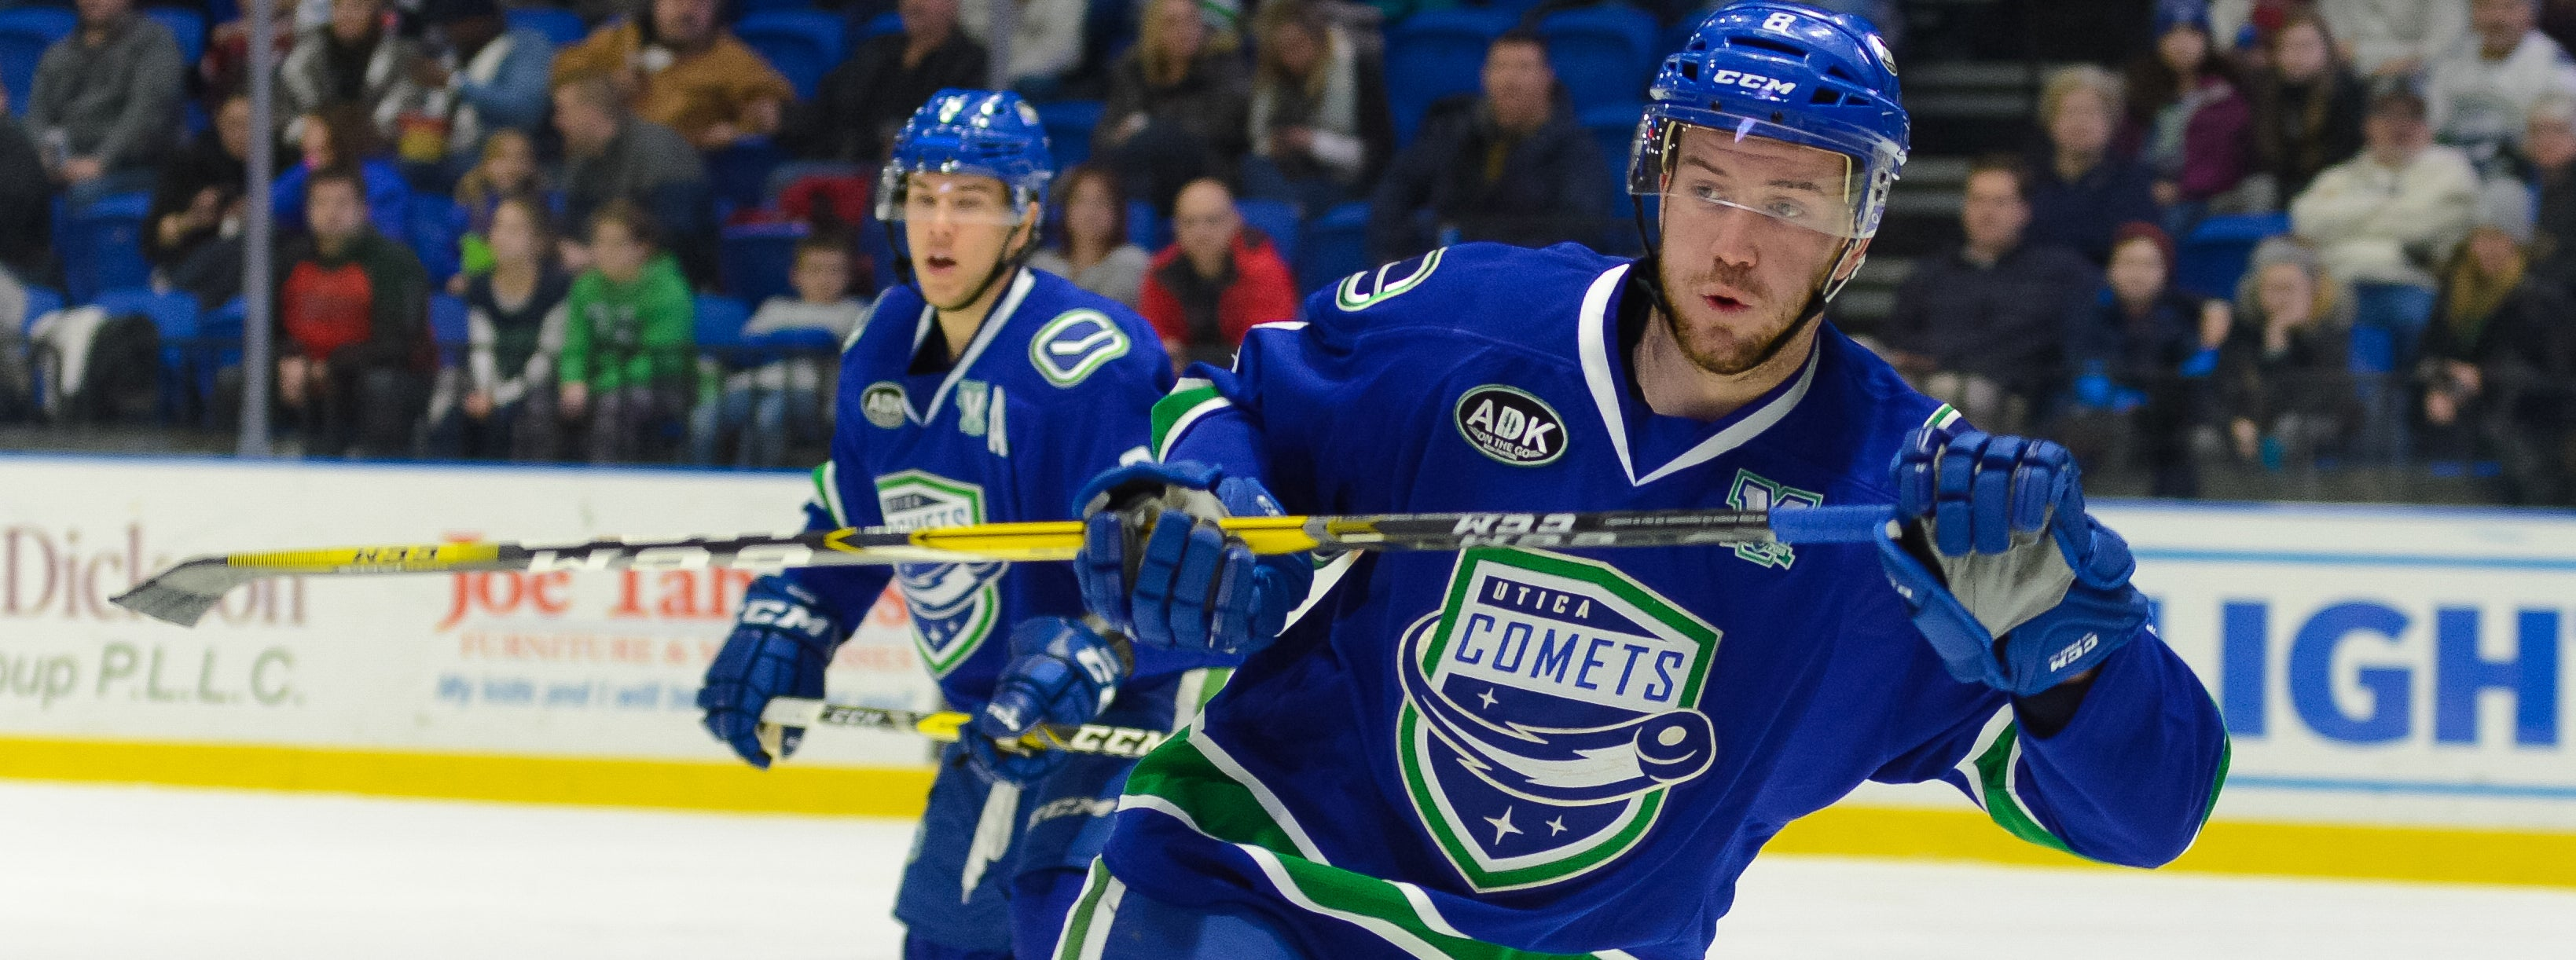 COMETS SIGN VINCENT ARSENEAU AND DYLAN BLUJUS